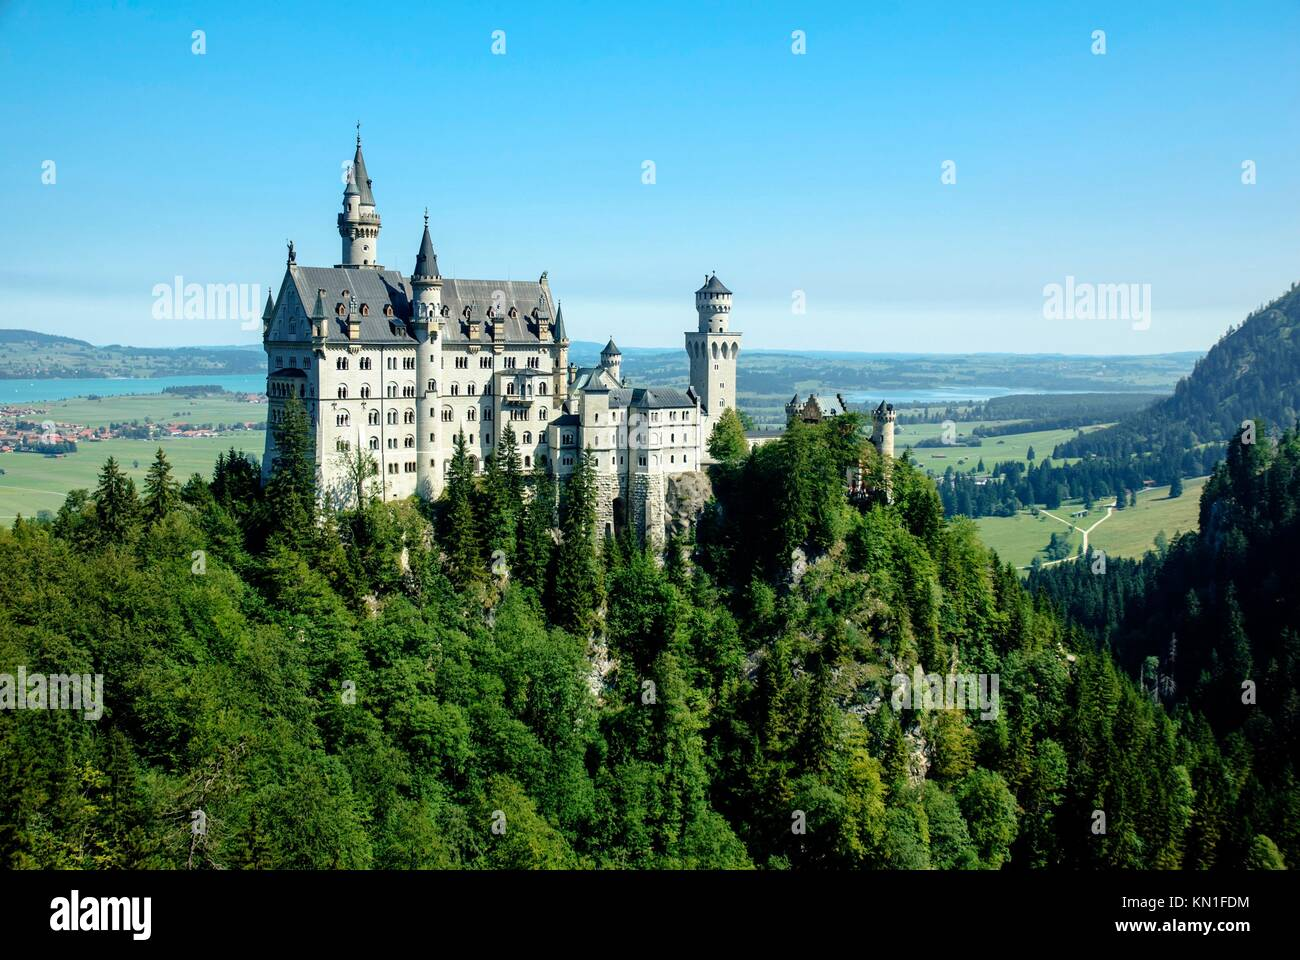 Neuschwanstein Castle was built by King Ludwig II, Fuessen, Schwangau, Allgaeu, Bavaria, Germany. - Stock Image